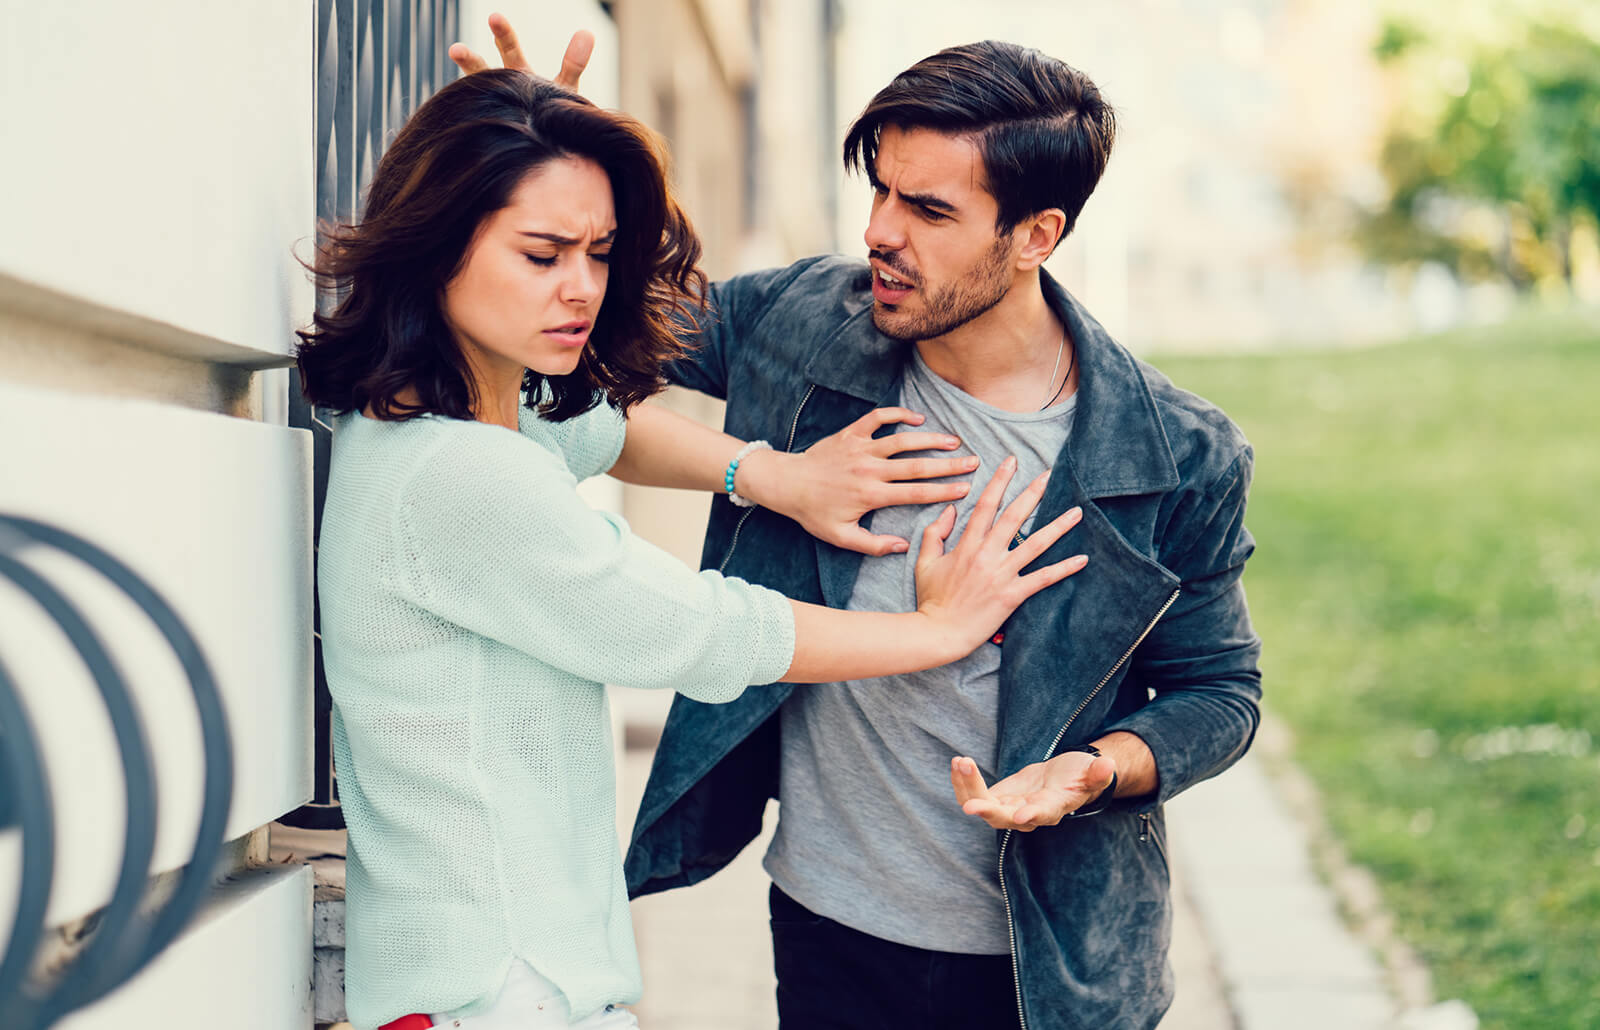 Sound Advice On Ending Unhealthy Relationships Lovetoknow